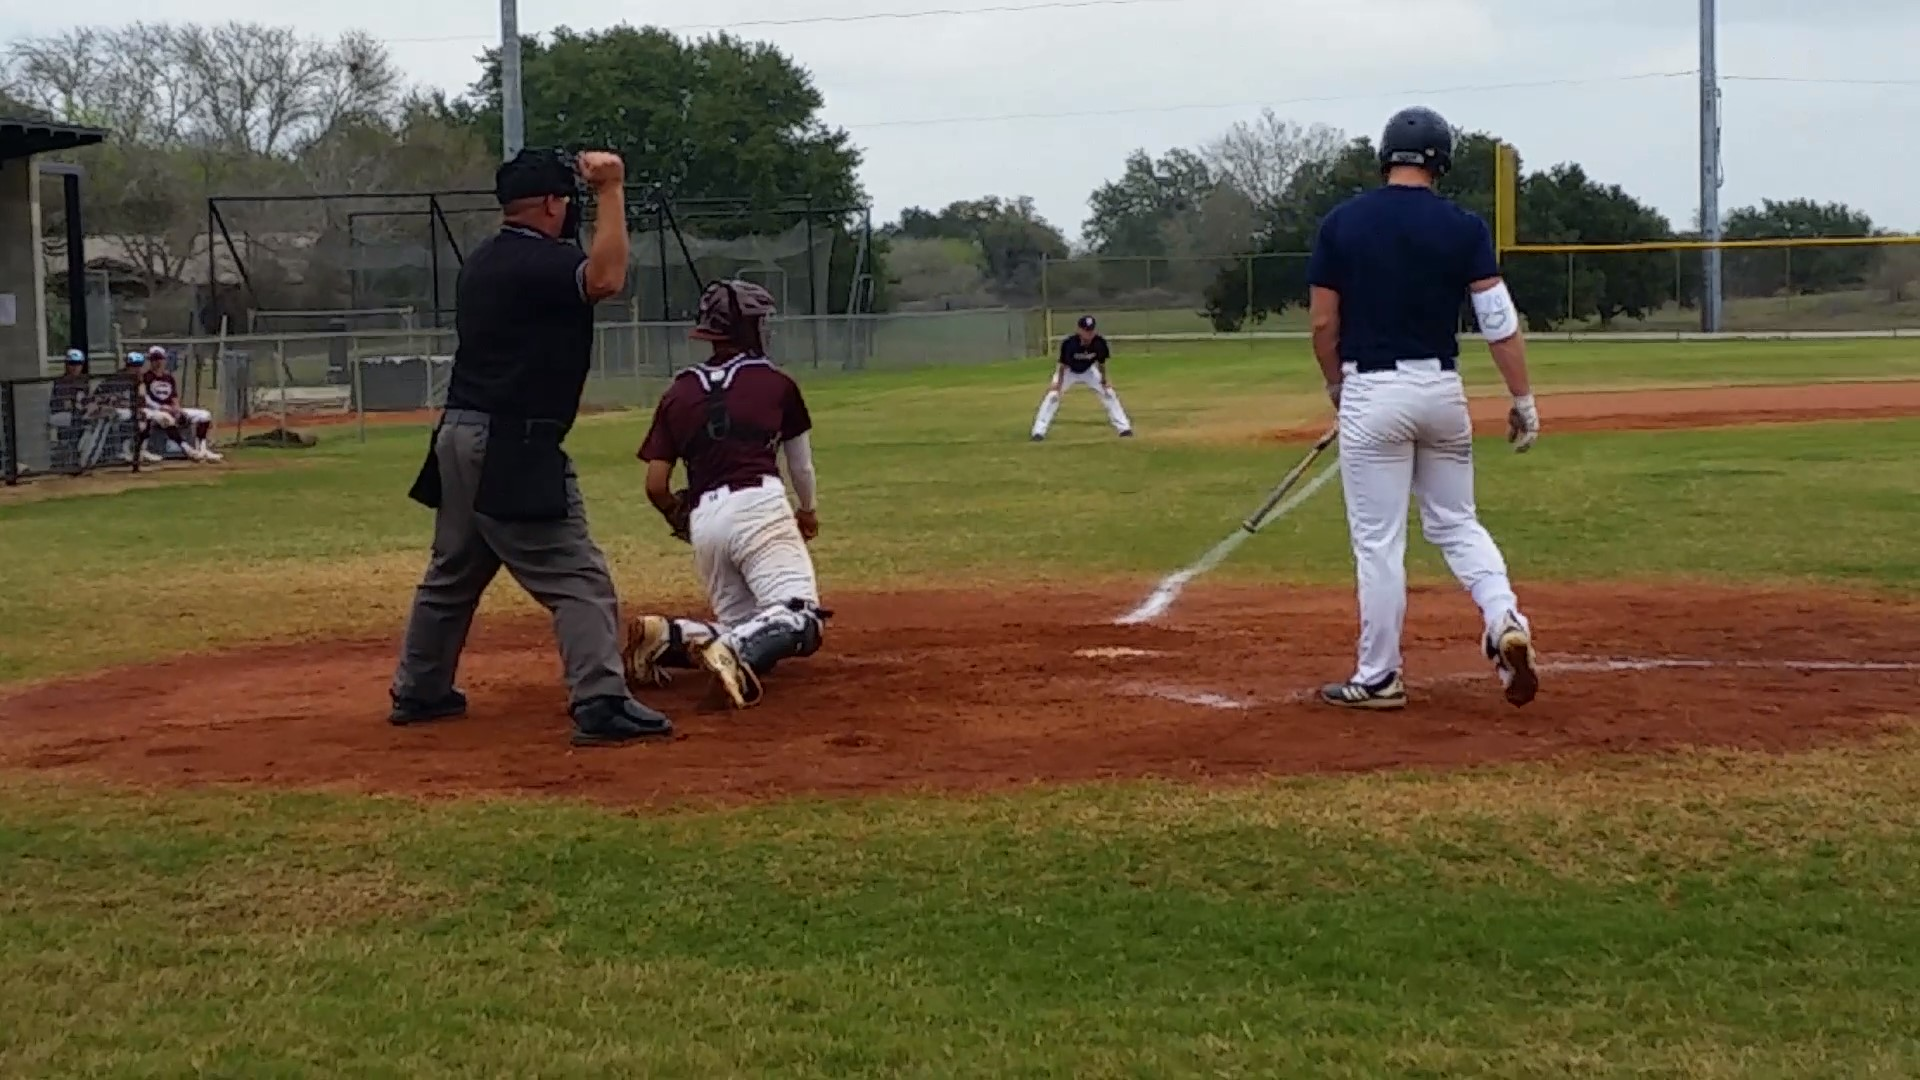 Irvin Russell Strike Call, LH @ Floresvi